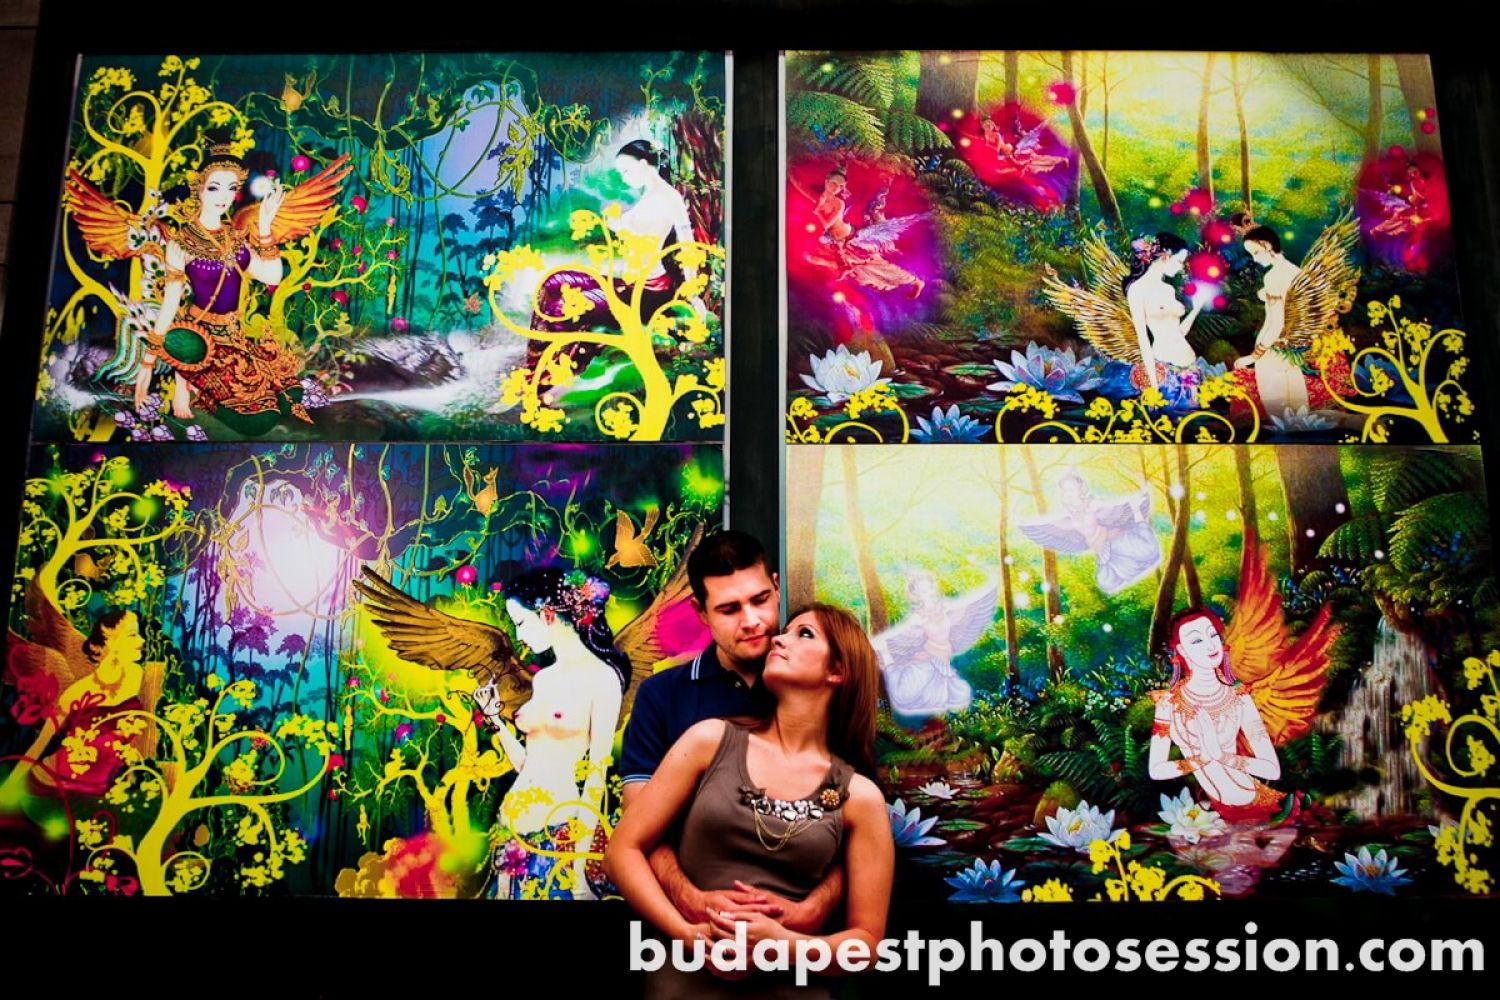 Take home some extra special memories of your time in Budapest! Your personal photographer will take pictures of you at various locations in Budapest, with cosy crafts, winding streets and some of the city most iconic buildings as backdrops.  www.budapestphotosession.com #travelphotography #budapestphotography #vacationphoto #travelphotographer #beautifulmemories #bookyourphotographer